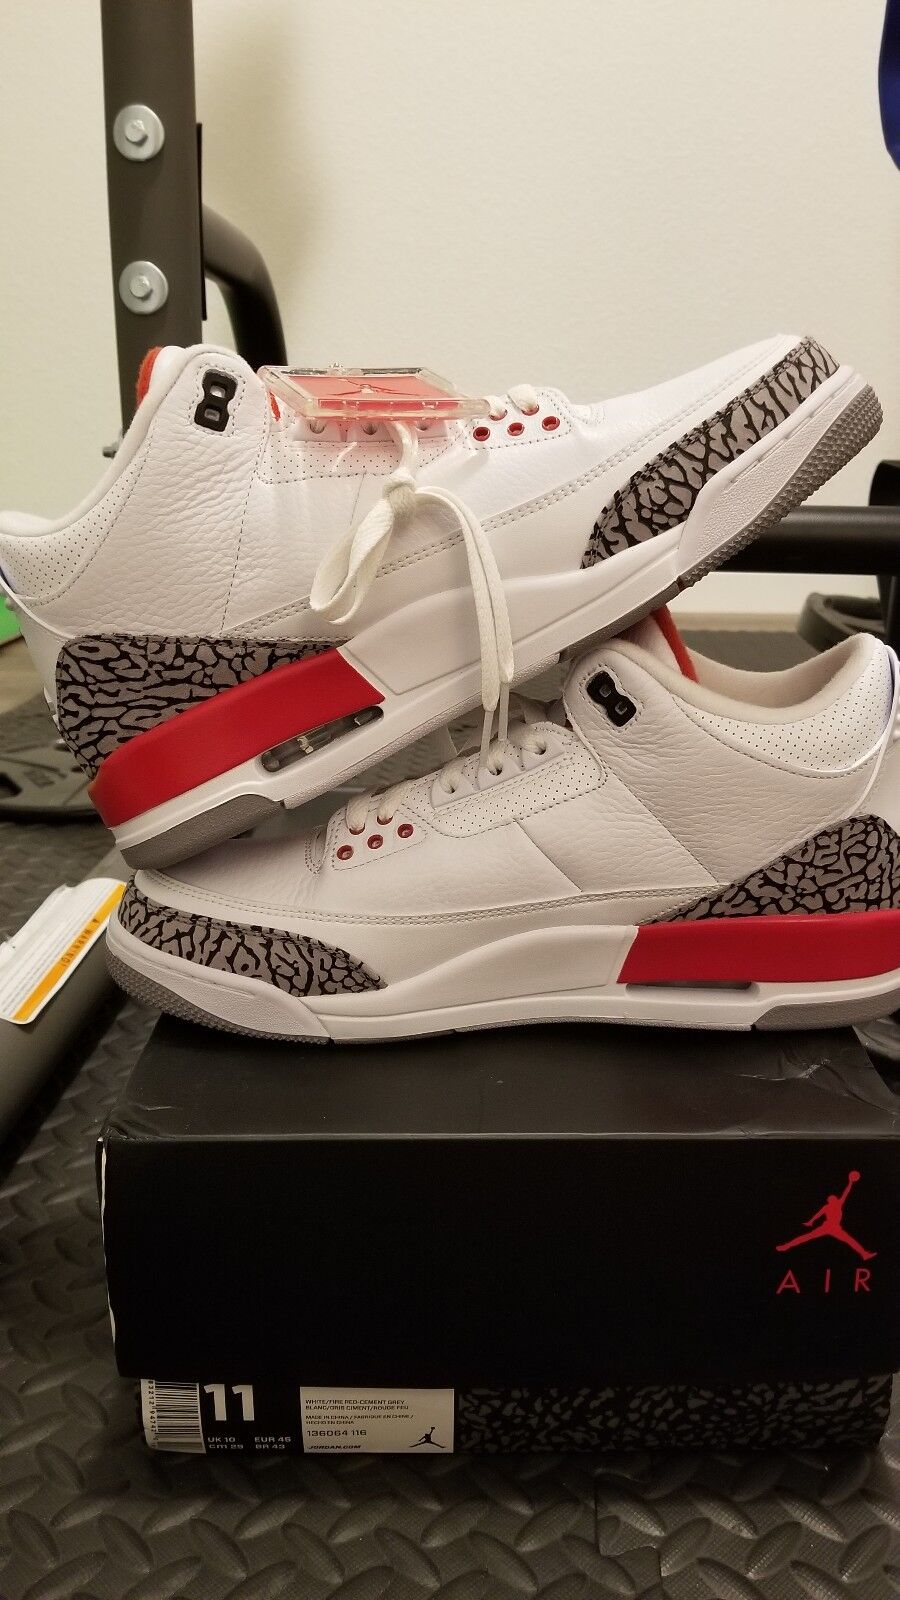 Nike air jordan 3 retro (2018) (2018) katrina (2018) retro retro hall of fame ... 751cc0